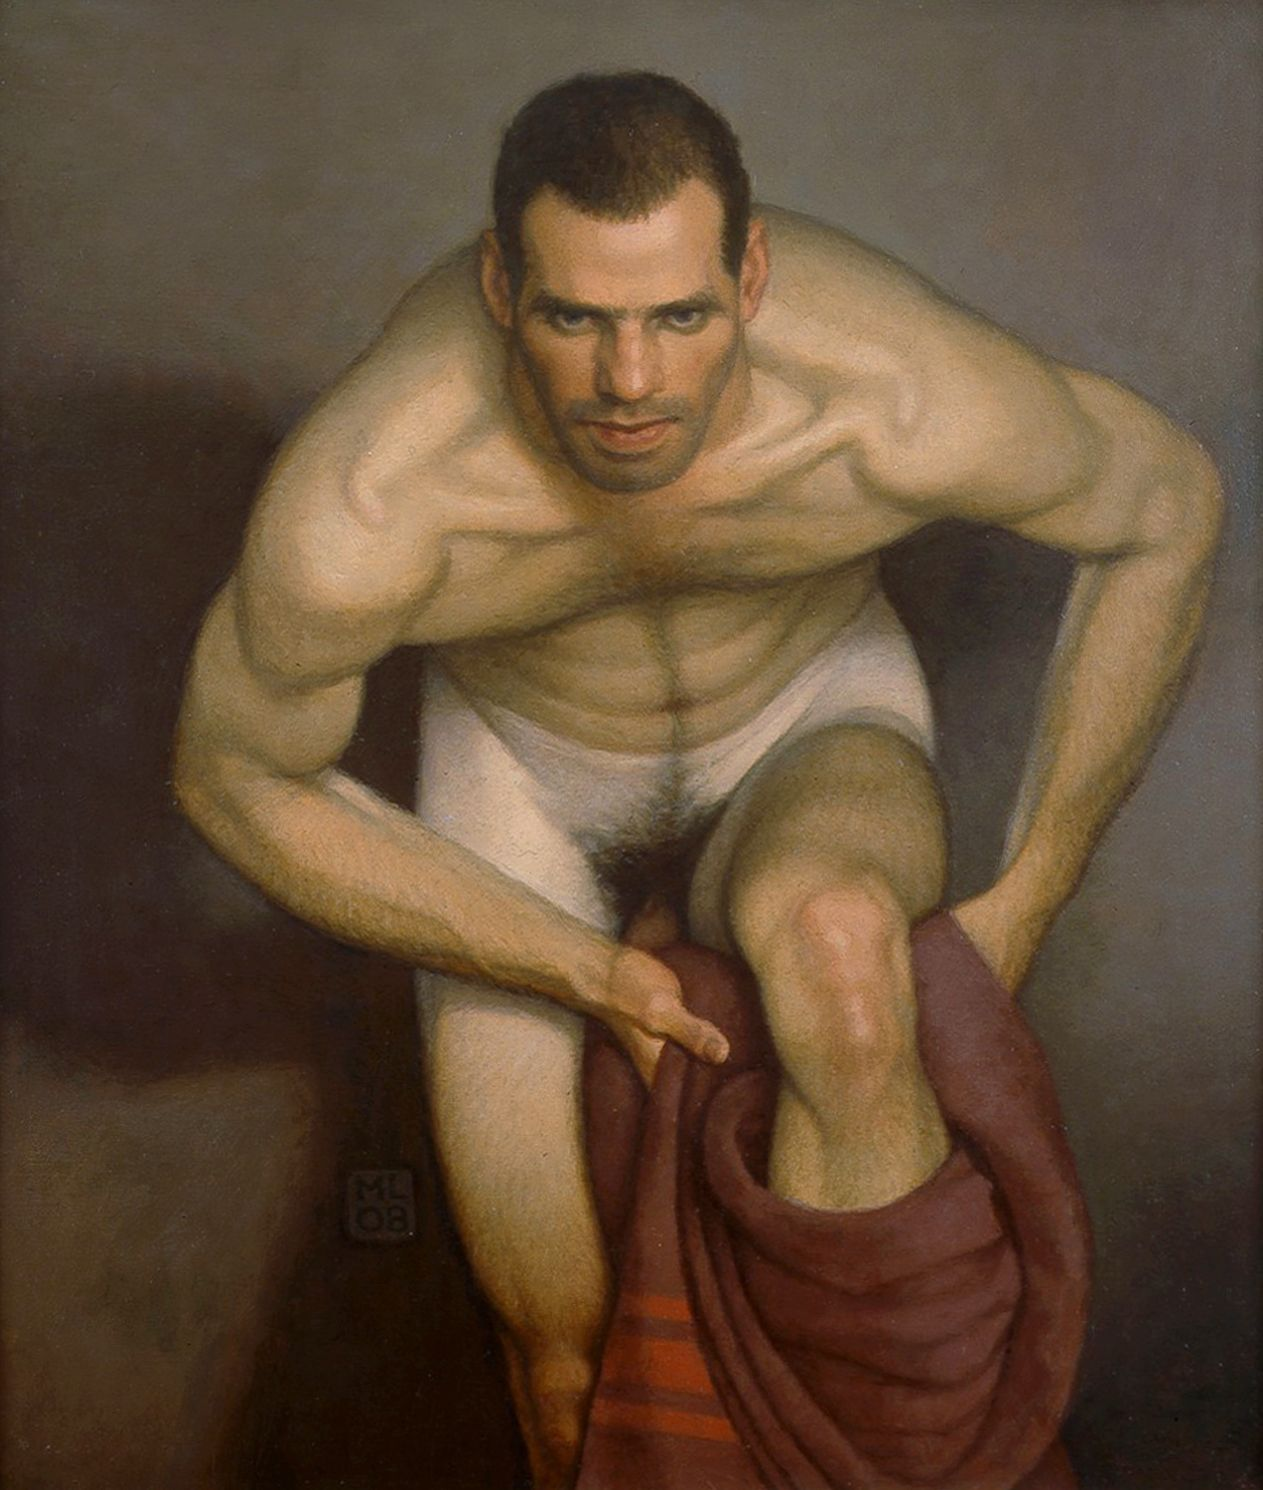 Michael Leonard, Bather with Intent , 2008, alkyd-oil on masonite, 25 x 21 1/2 inches